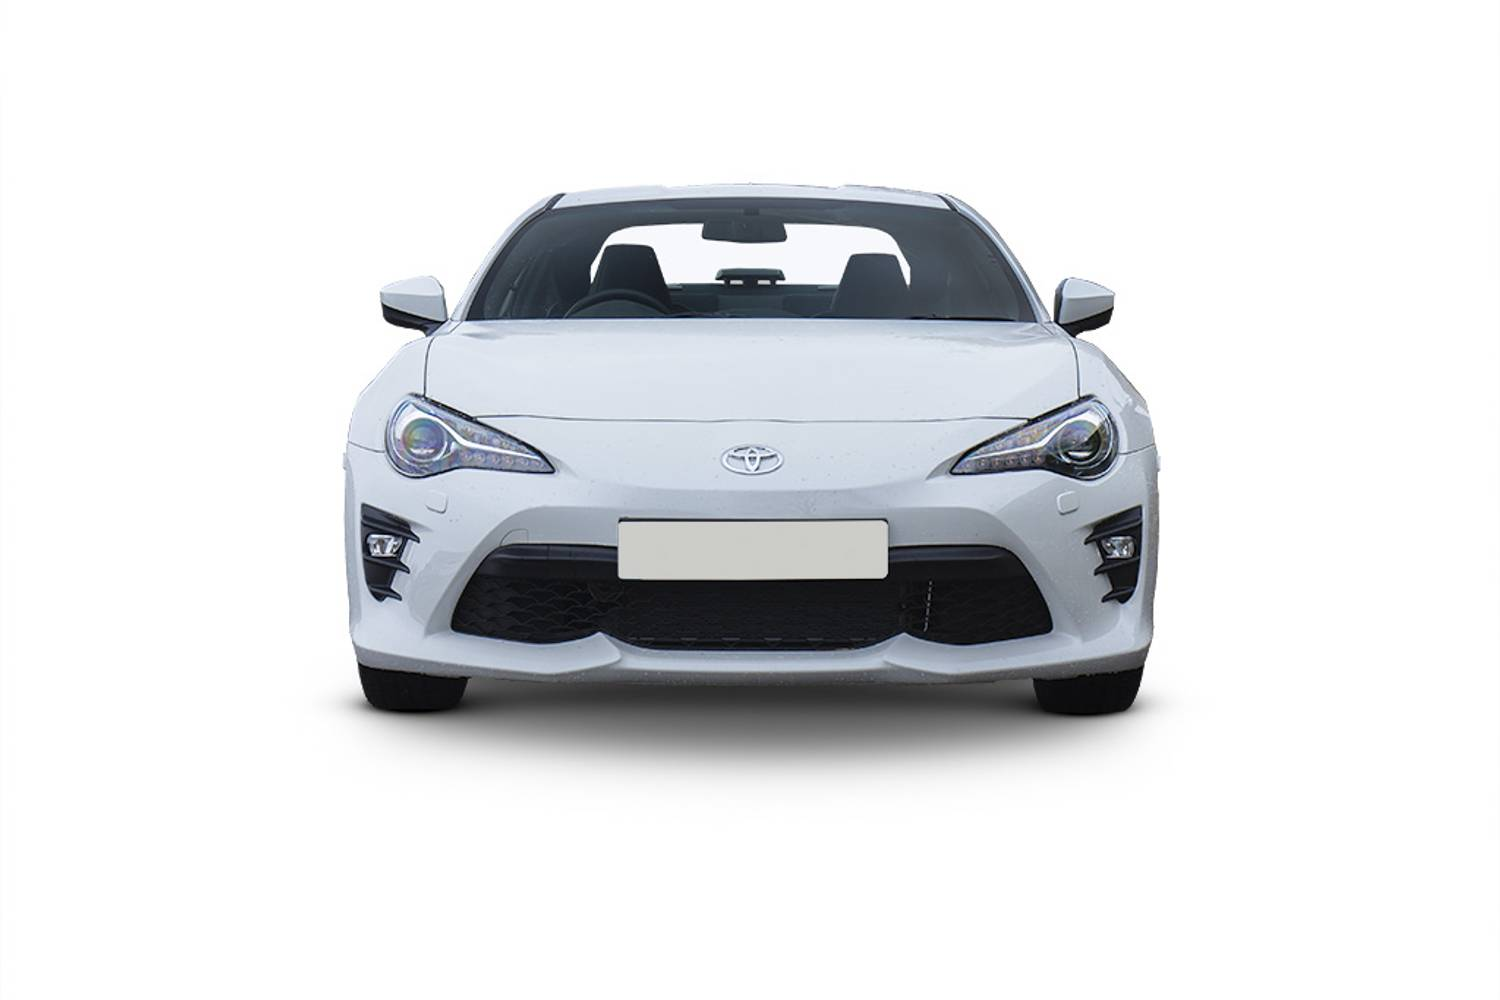 Toyota GT86 Coupe 2.0 D-4S 2dr Front